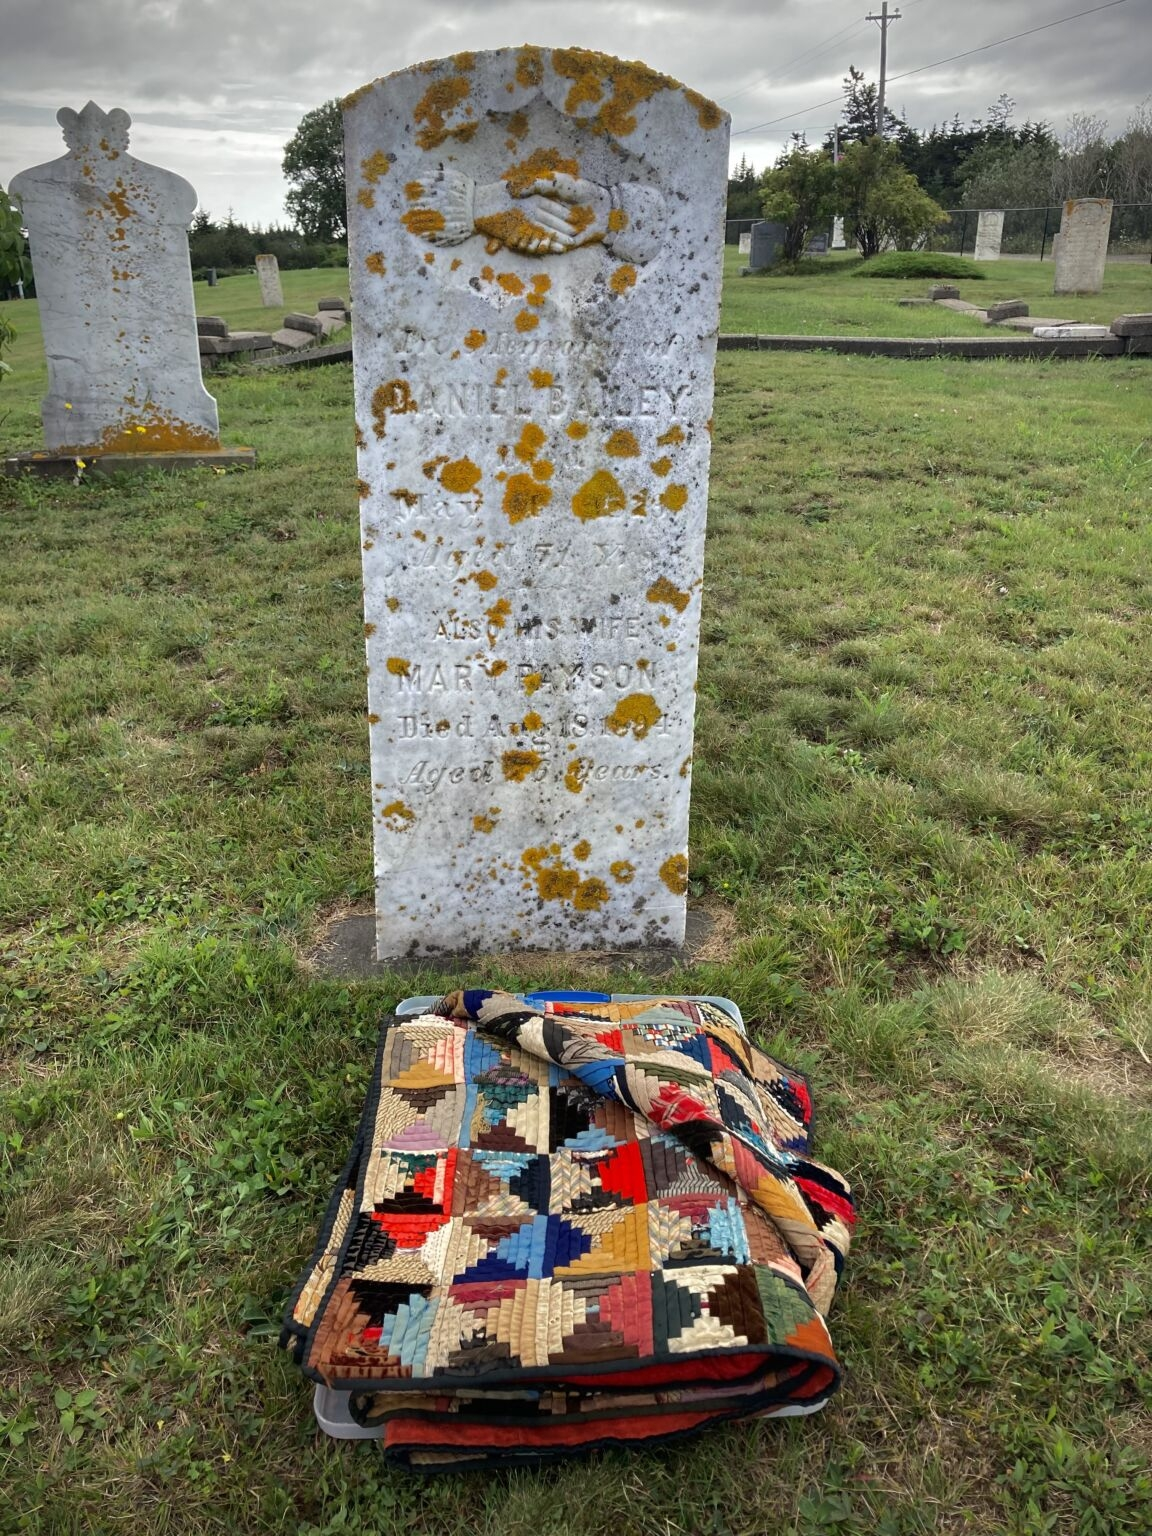 A folded quilt on the ground in front of a very old grave marker